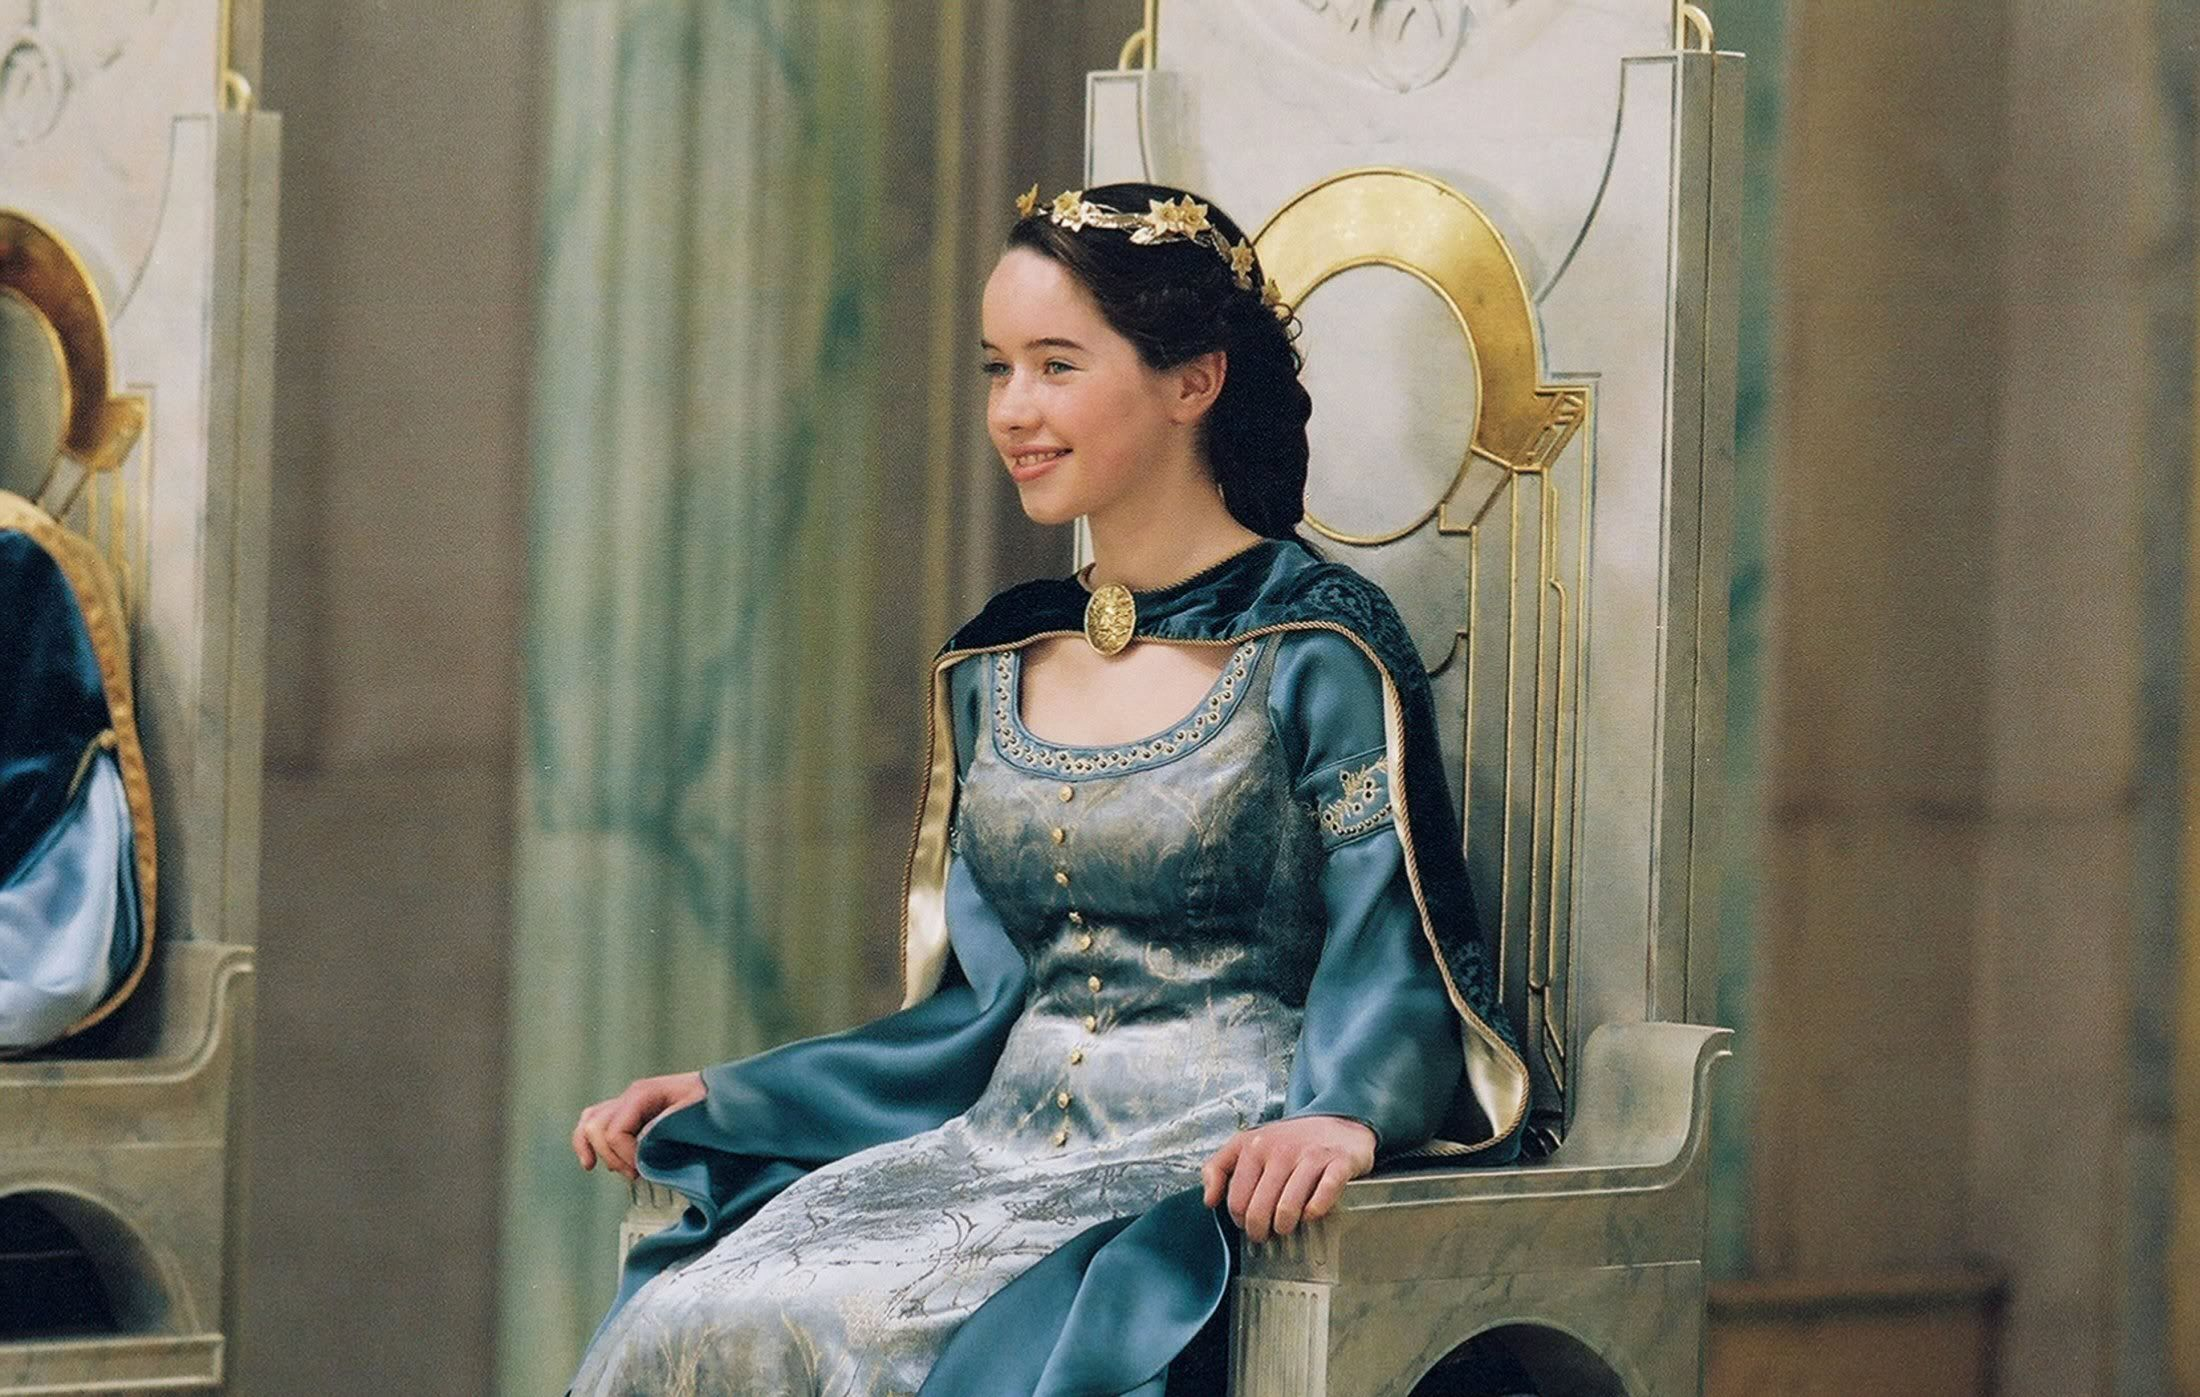 Susan Pevensey - the most controversial character in the novel The Chronicles of Narnia 10